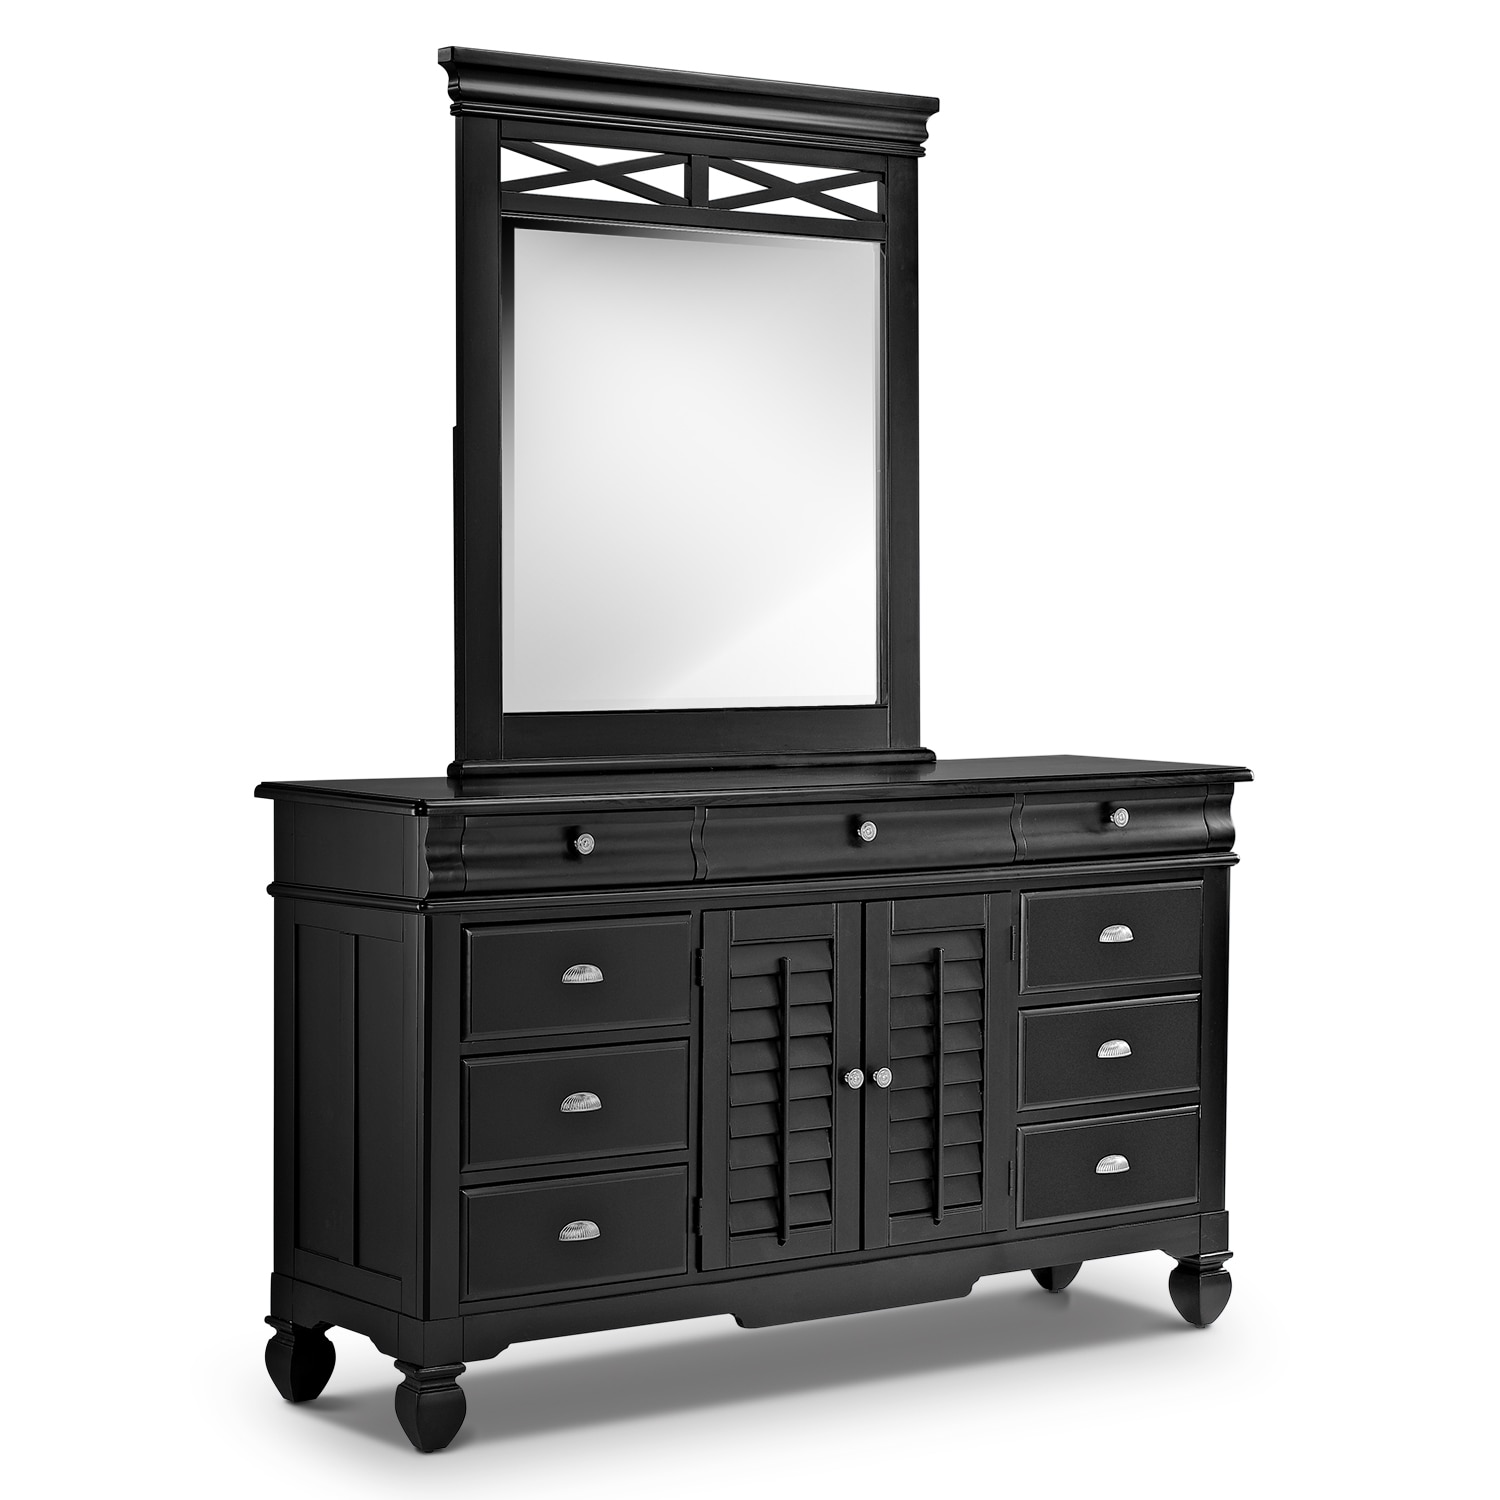 Bedroom Furniture - Plantation Cove Dresser and Mirror - Black